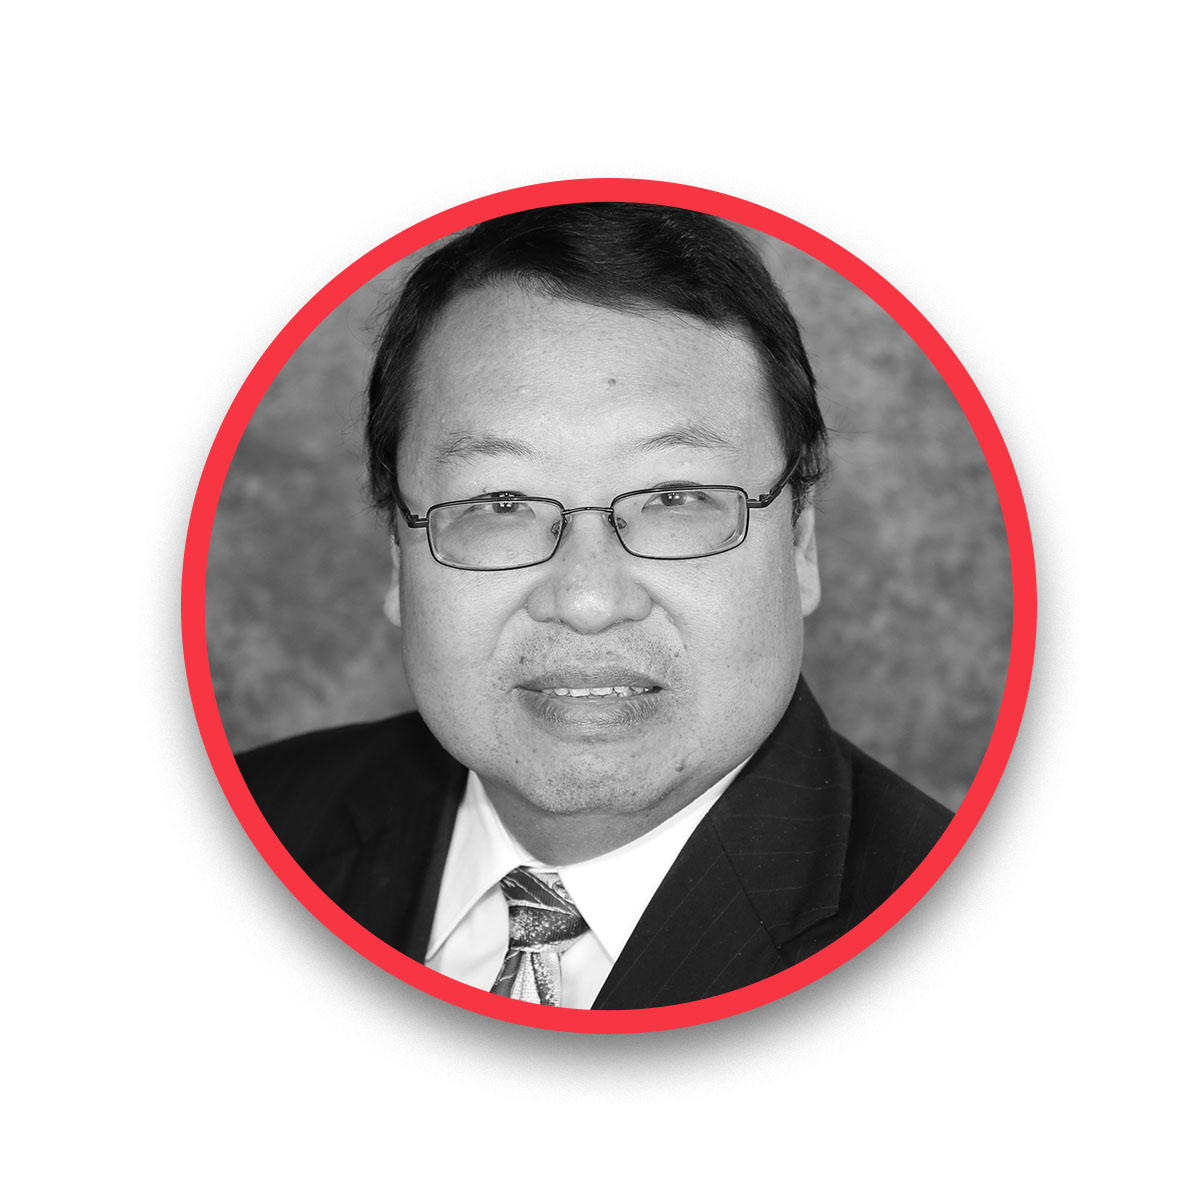 Dr. Robert Lee -  Senior Technical Advisor  Dr. Lee is a Professor of Electrical and Computer Engineering (ECE) and former Director of the Simulation Innovation and Modeling Center in the College of Engineering at The Ohio State University.